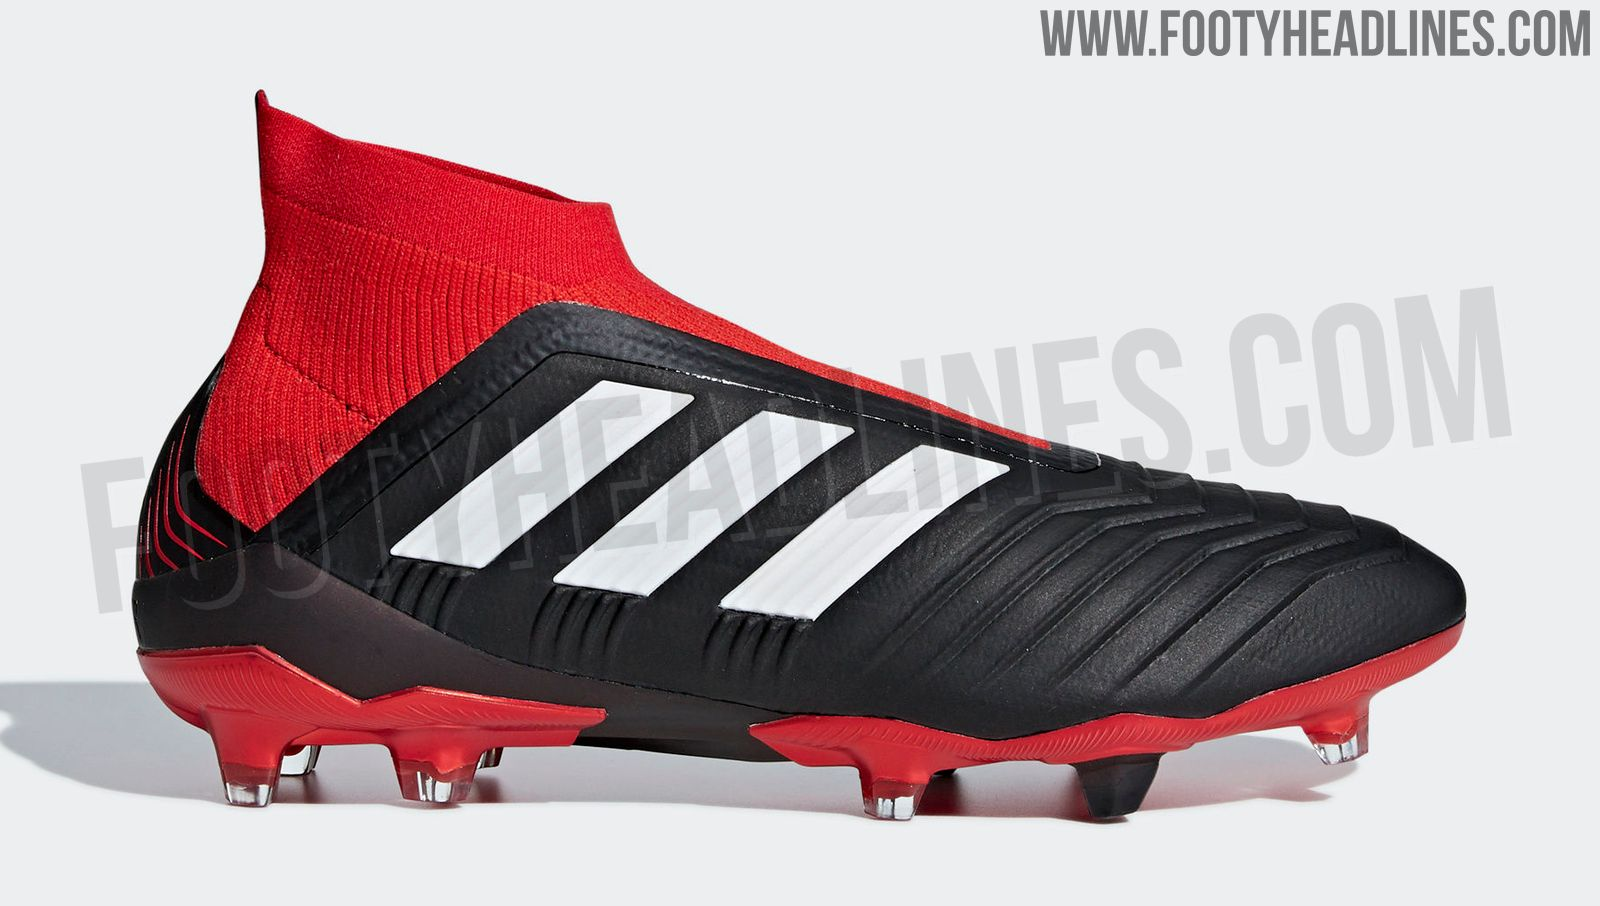 reputable site e9b14 34c10 Based on the cutting-edge Adidas Ace Purecontrol football boots, the Adidas  Predator 18+ combines a laceless upper with traditional Predator rubber  elements ...